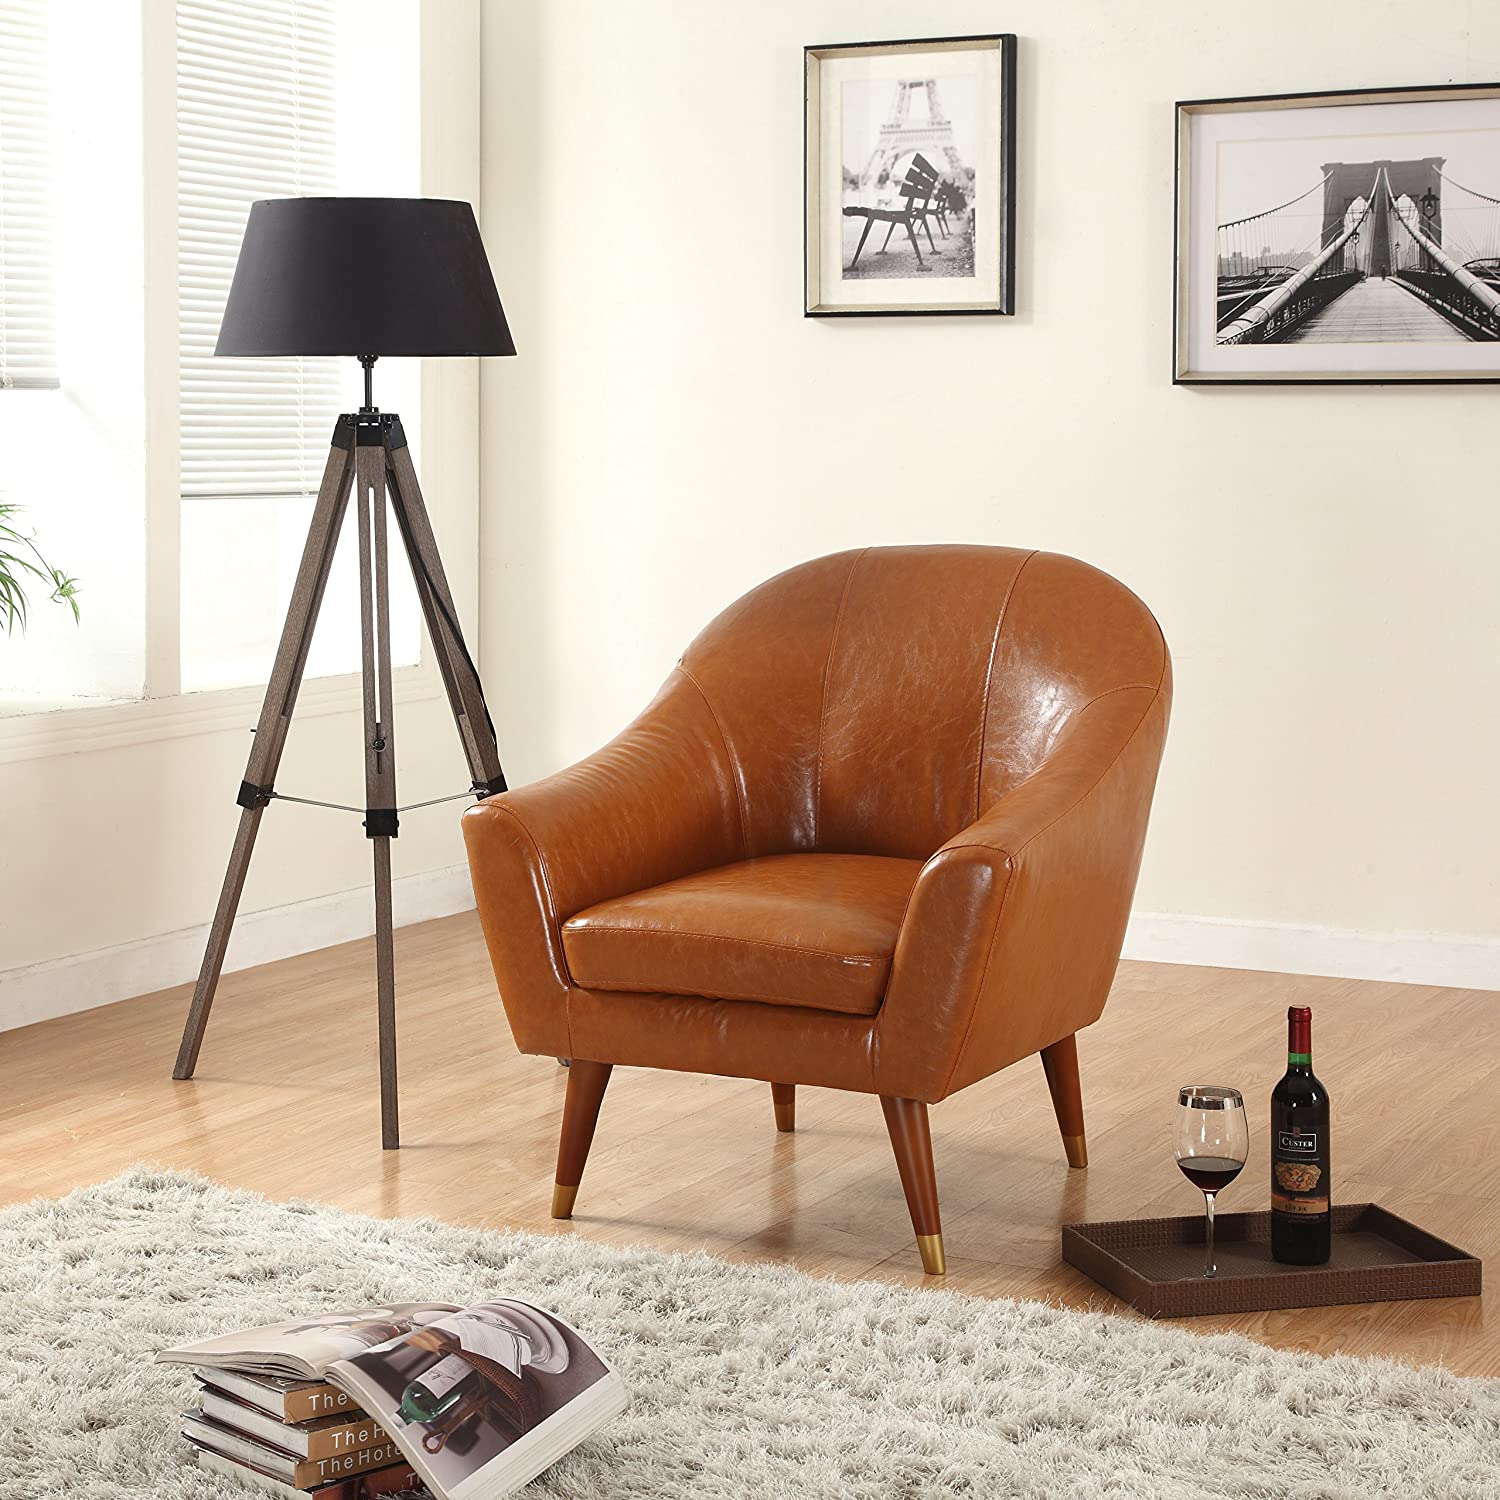 Marvelous Divano Roma Furniture Signature Collection Mid Century Bonded Leather Accent Chair Camel Pdpeps Interior Chair Design Pdpepsorg